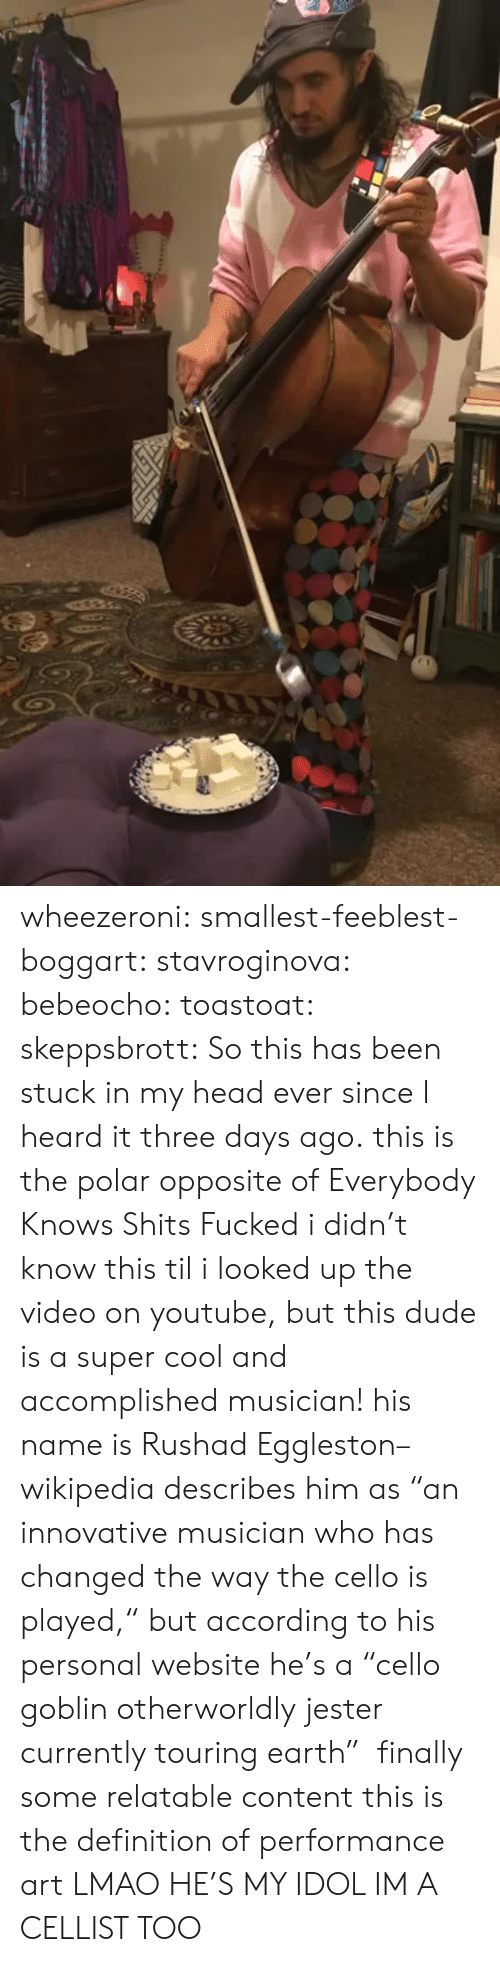 """Dude, Head, and Lmao: wheezeroni:  smallest-feeblest-boggart:  stavroginova:  bebeocho:  toastoat:  skeppsbrott: So this has been stuck in my head ever since I heard it three days ago. this is the polar opposite of Everybody Knows Shits Fucked  i didn't know this til i looked up the video on youtube, but this dude is a super cool and accomplished musician! his name is Rushad Eggleston–wikipedia describes him as""""an innovative musician who has changed the way the cello is played,"""" but according tohis personal websitehe's a""""cello goblin  otherworldly jester currently touring earth""""   finally some relatable content  this is the definition of performance art  LMAO HE'S MY IDOL IM A CELLIST TOO"""